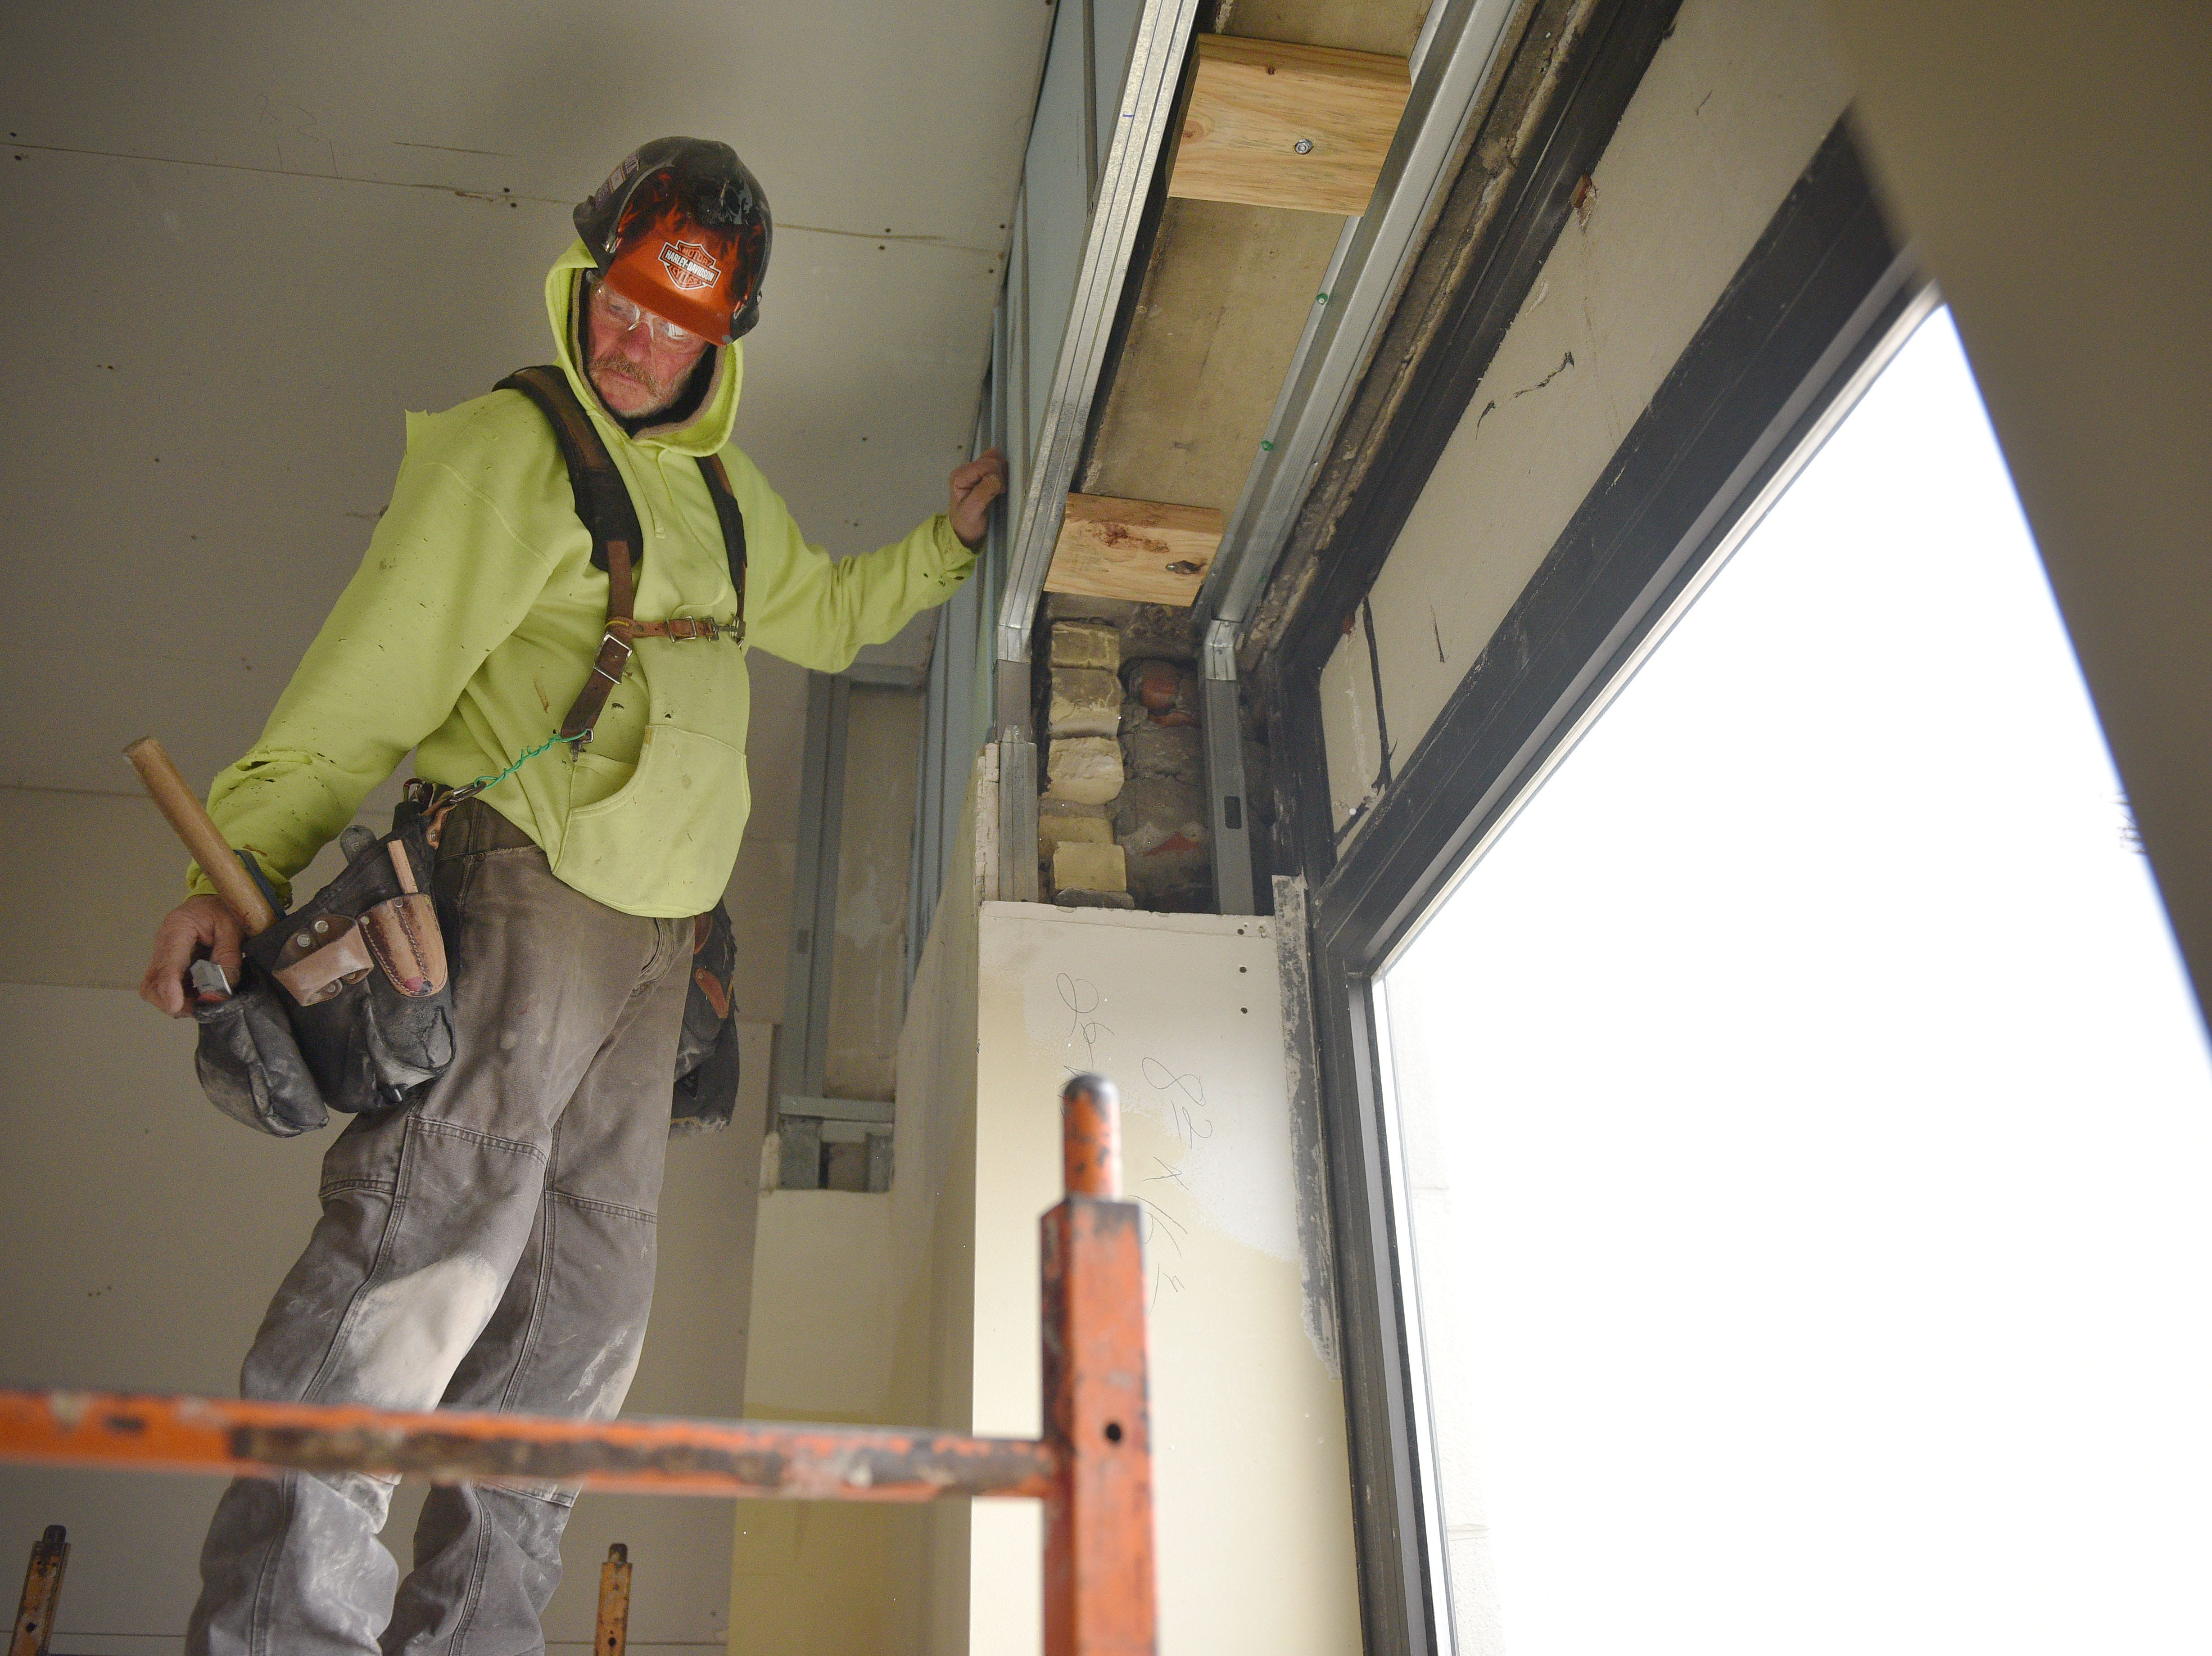 Fox Drywall & Plastering worker Jerald Swift works on insulating the exterior frame with foam in Hotel Phillips Thursday, Oct. 11, in downtown Sioux Falls. The luxury hotel is an ongoing remodel of the old Great Western building.